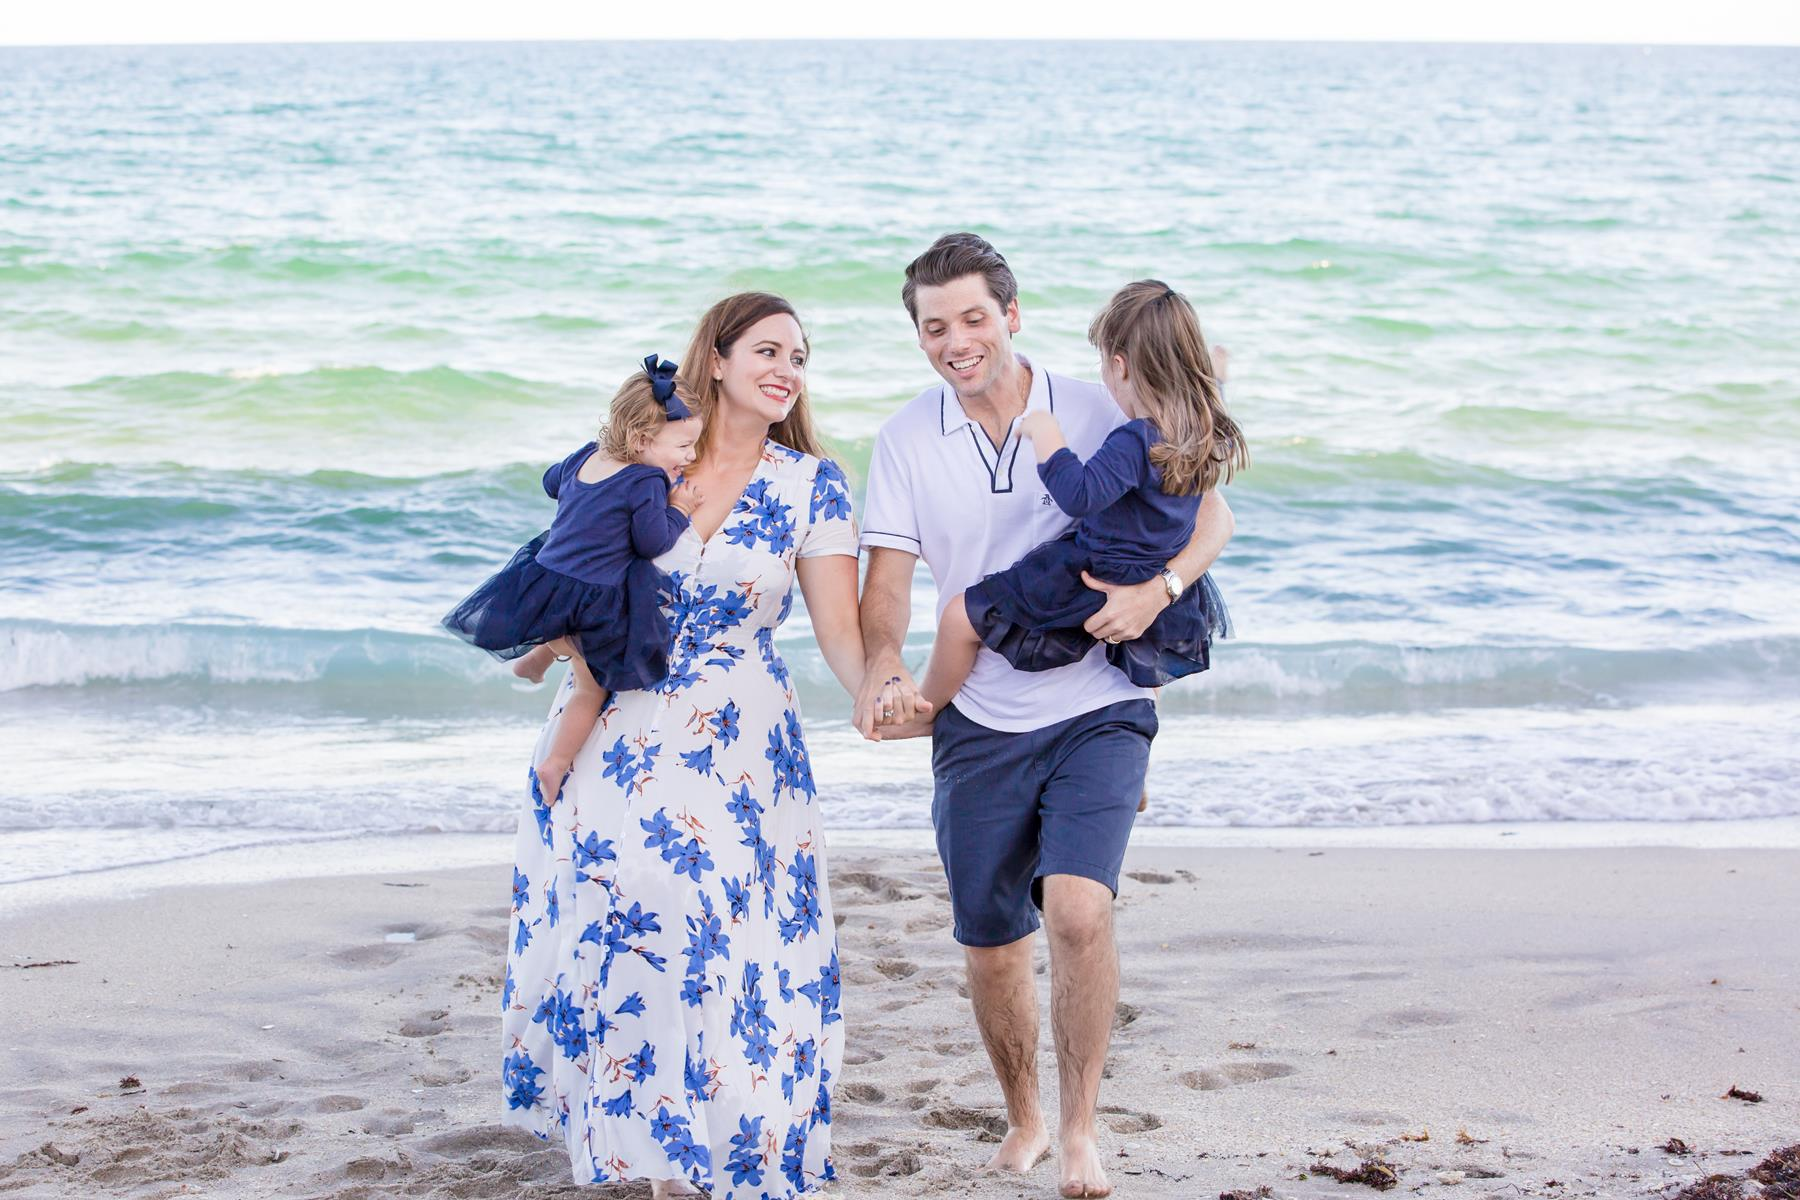 featured_franchesca-fread-photography-south-florida-and-destination-wedding-portrait-lifestyle-photographer15